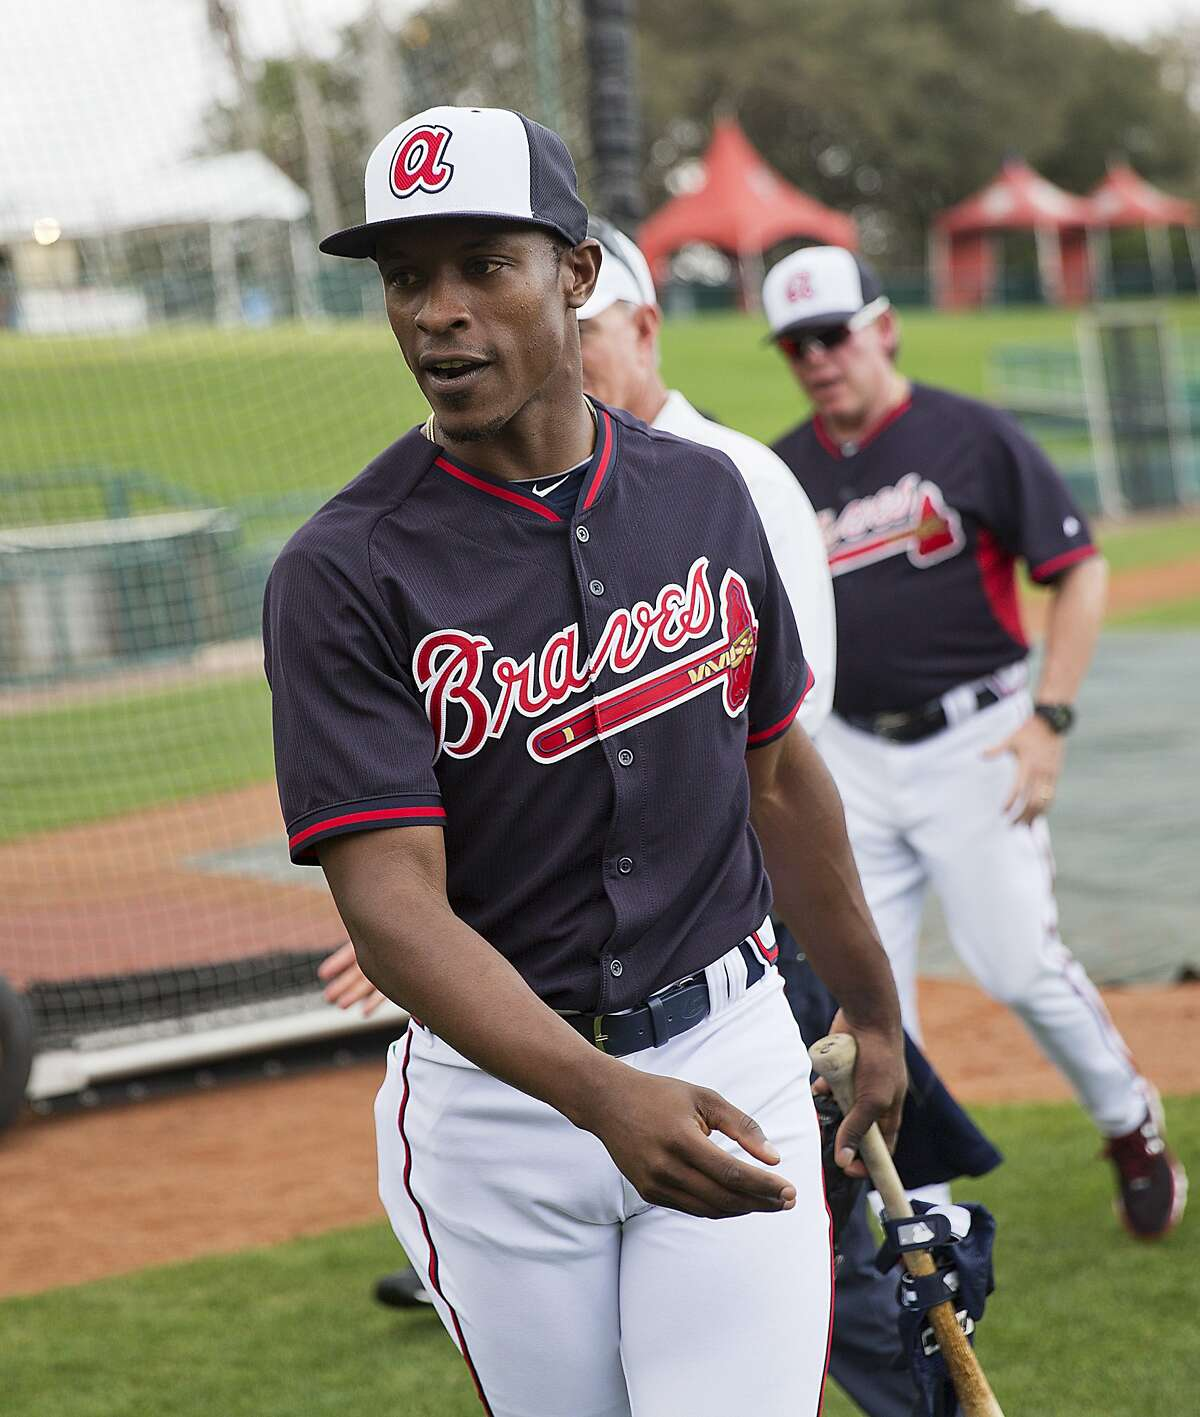 The Atlanta Braves' B.J. Upton Jr. is the latest athlete to change his name, although he didn't require any legal paperwrk. Upton will now be referred to by his real first name, Melvin.